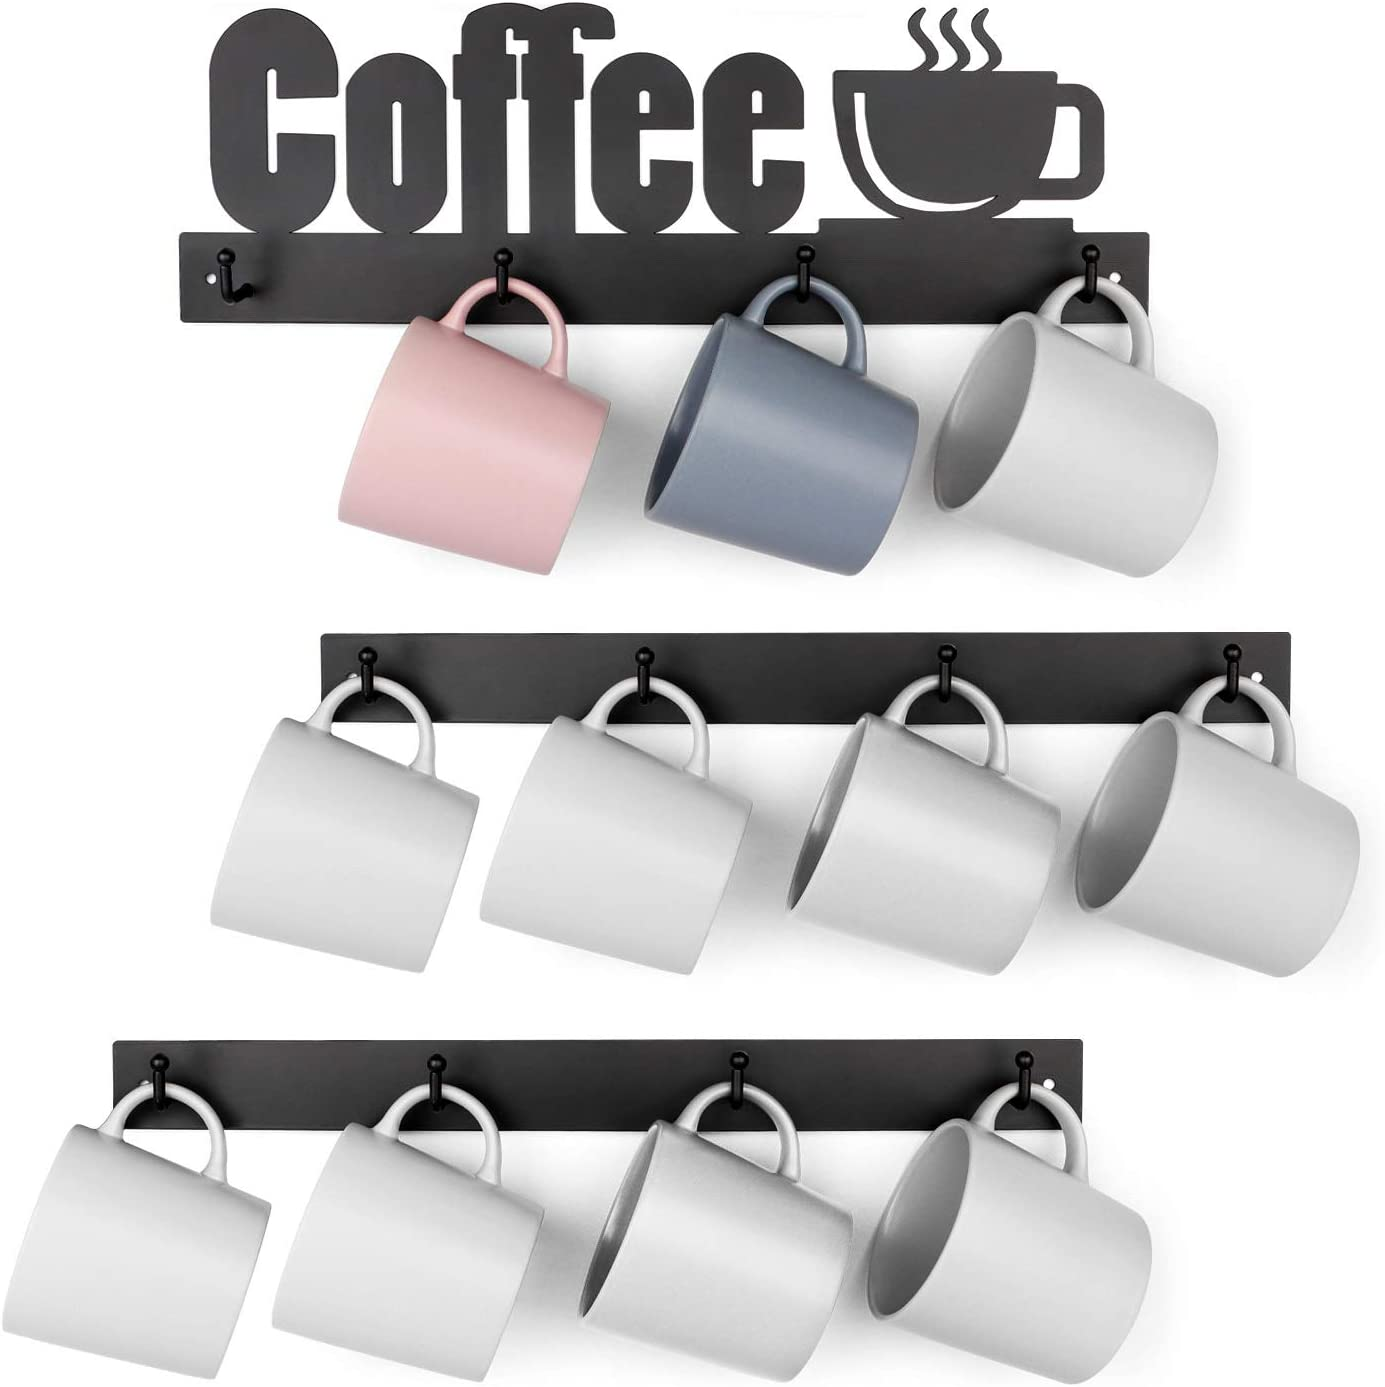 HULISEN Metal Coffee Mug Rack with 12 Hooks, Wall Mounted Coffee Cup Holder with Coffee Letter Sign, Tea Cup Hanger for Bar Kitchen Organizer Display, Coffee Nook Decor, Black